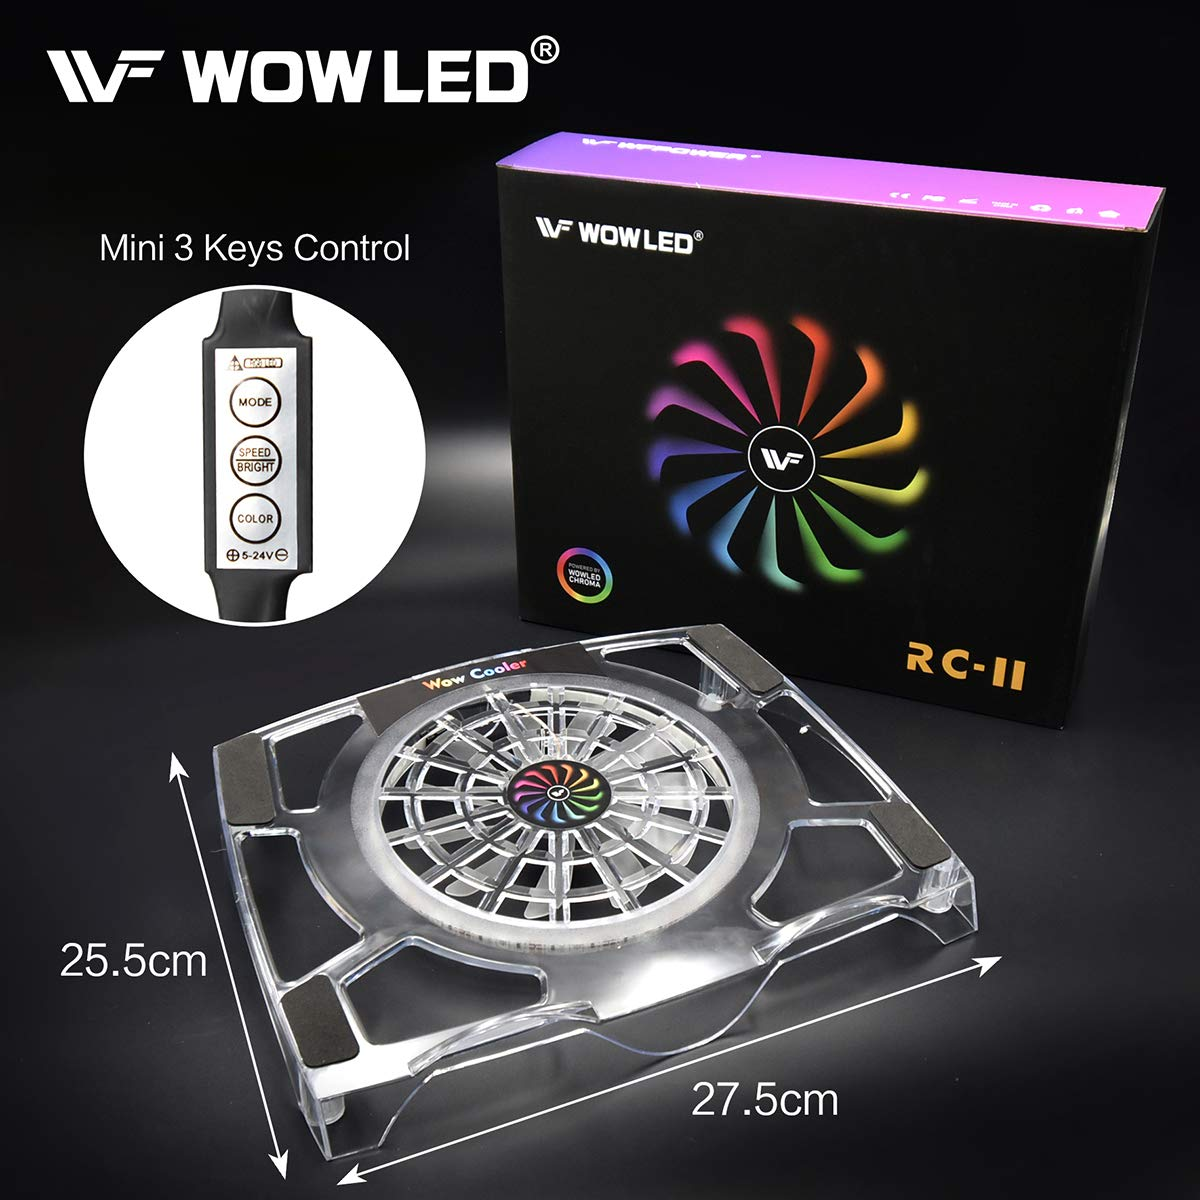 WOWLED Upgrade Sturdy LED Cooling Cooler Fan 3-Key Mini Controller PS4 Accessories Pro Cooling Fan, Xbox One X 360 Playstation 4 Sony Game Console PC, All-in-One USB RGB LED Fan Pad Stand Coolers by WOWLED (Image #5)